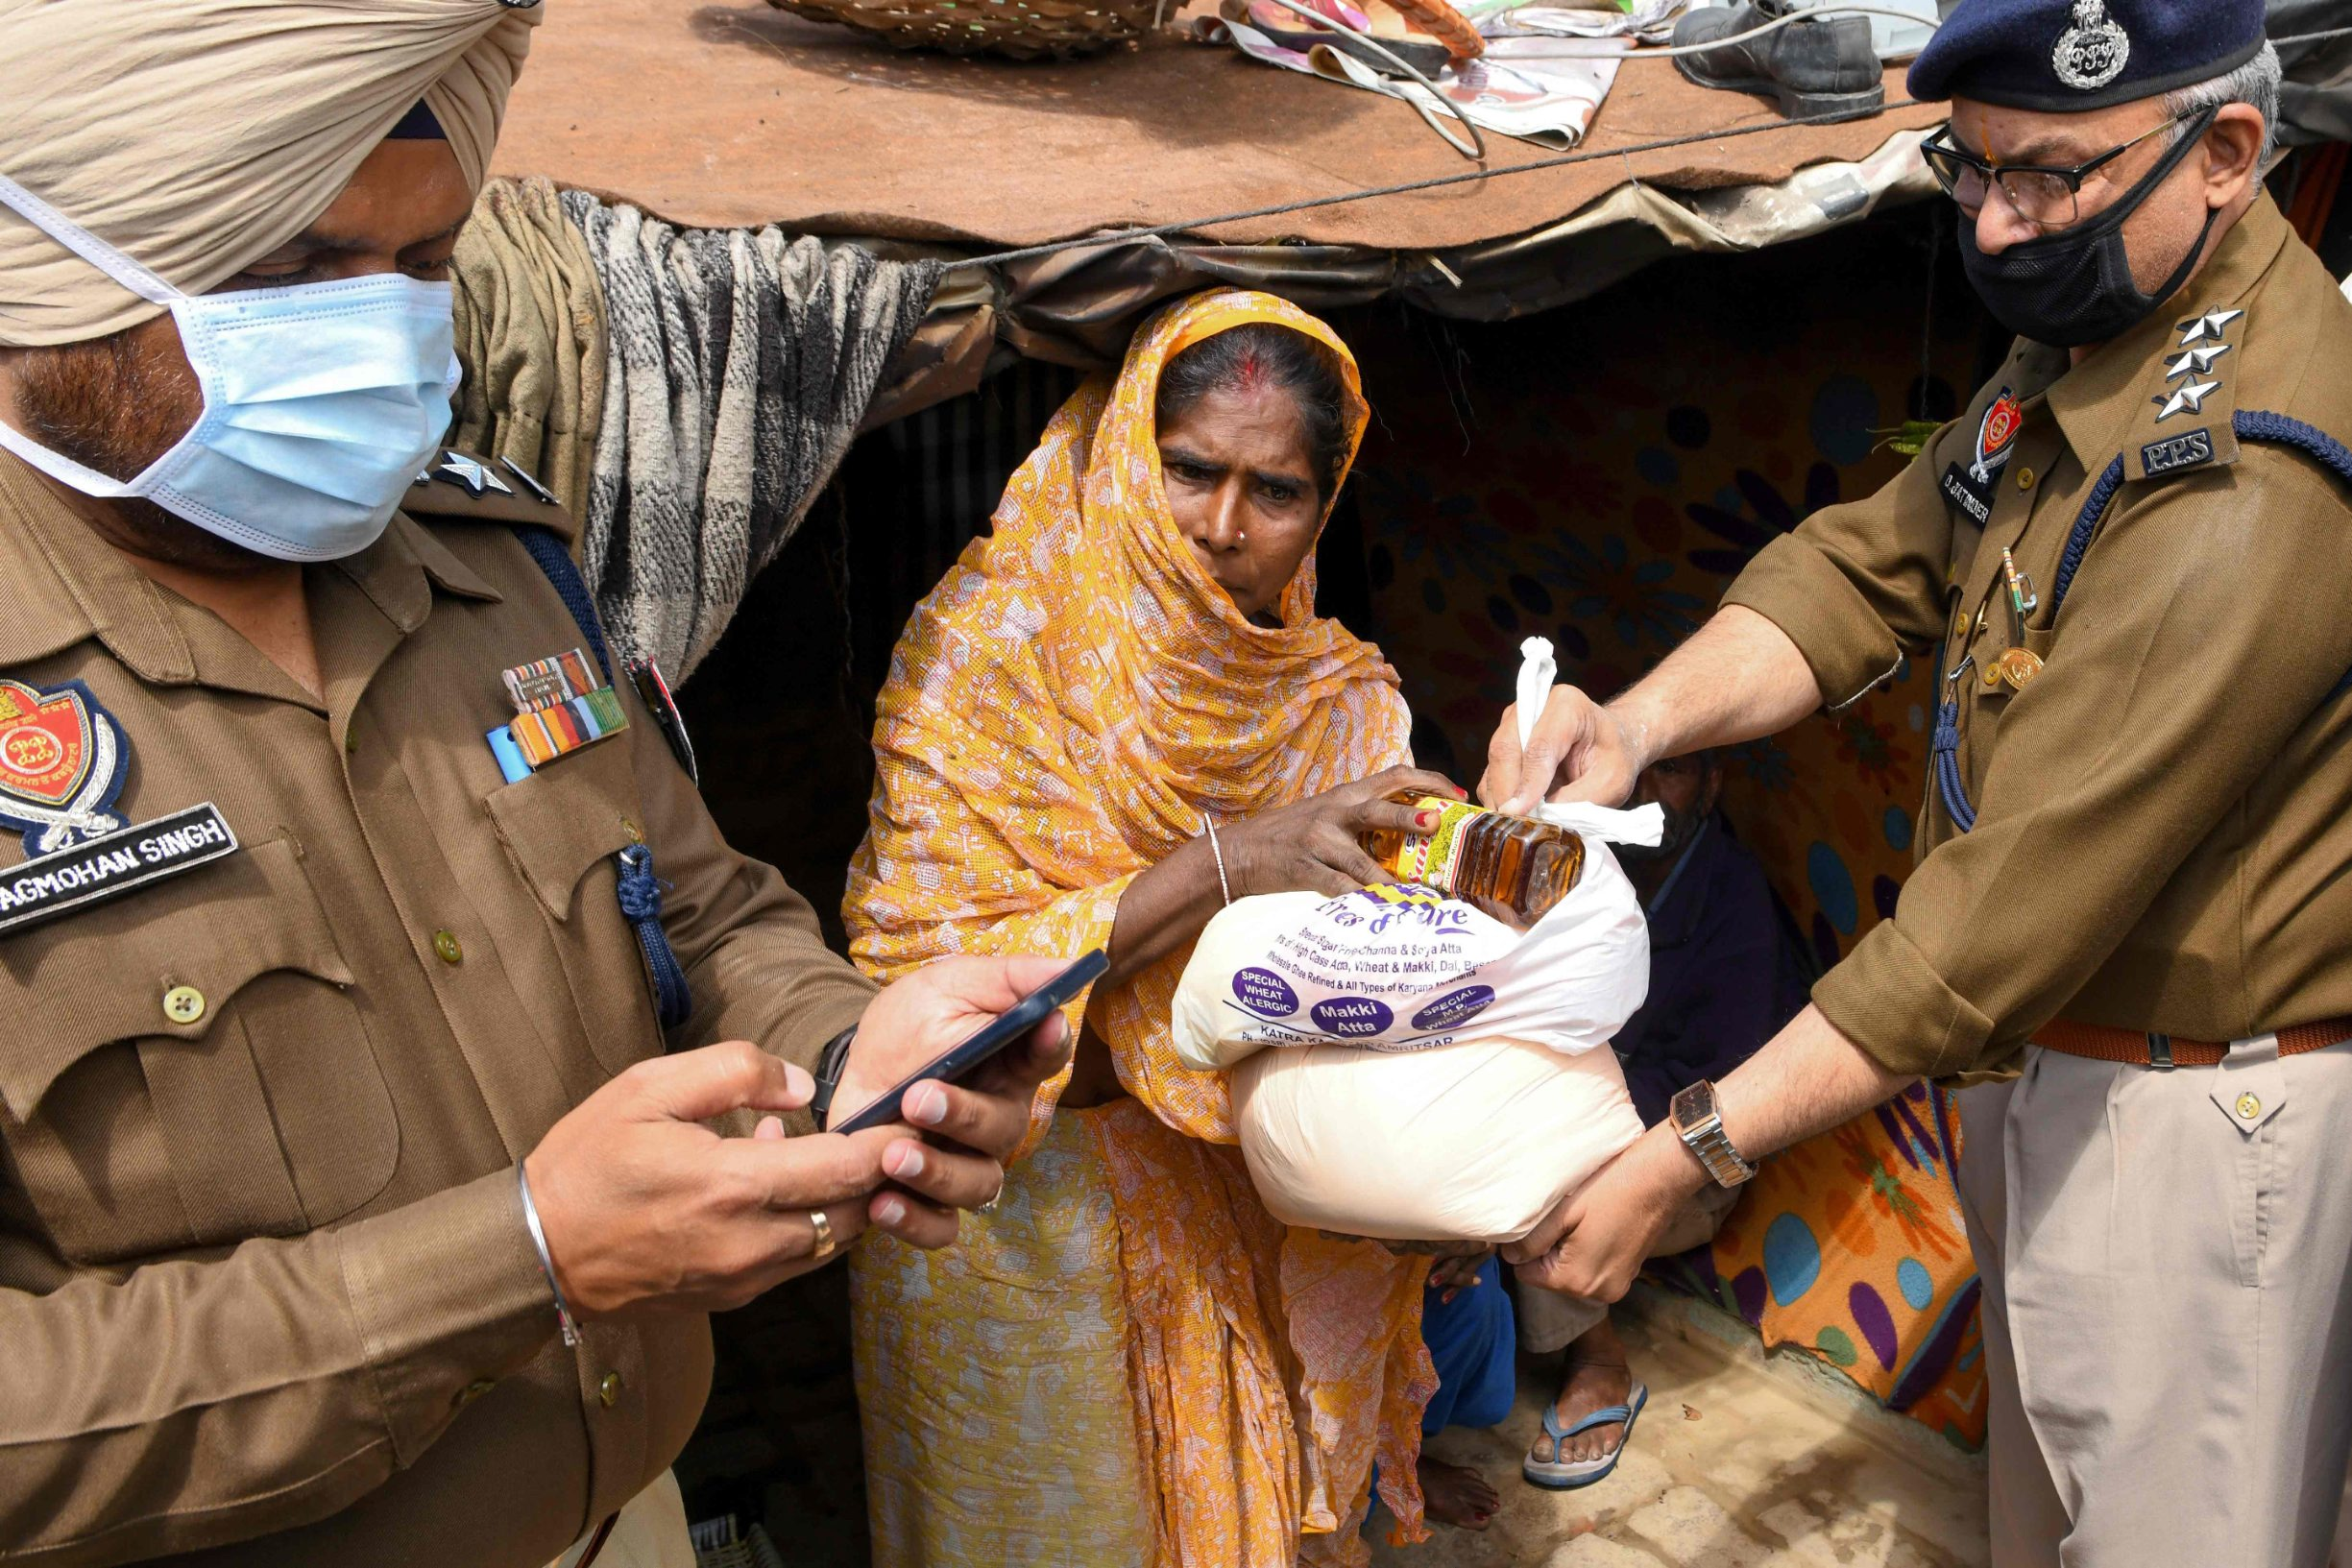 Police personnel distribute free food to people in need during the first day of a 21-day government-imposed nationwide lockdown as a preventive measure against the COVID-19 coronavirus, in Amritsar on March 25, 2020. (Photo by NARINDER NANU / AFP)